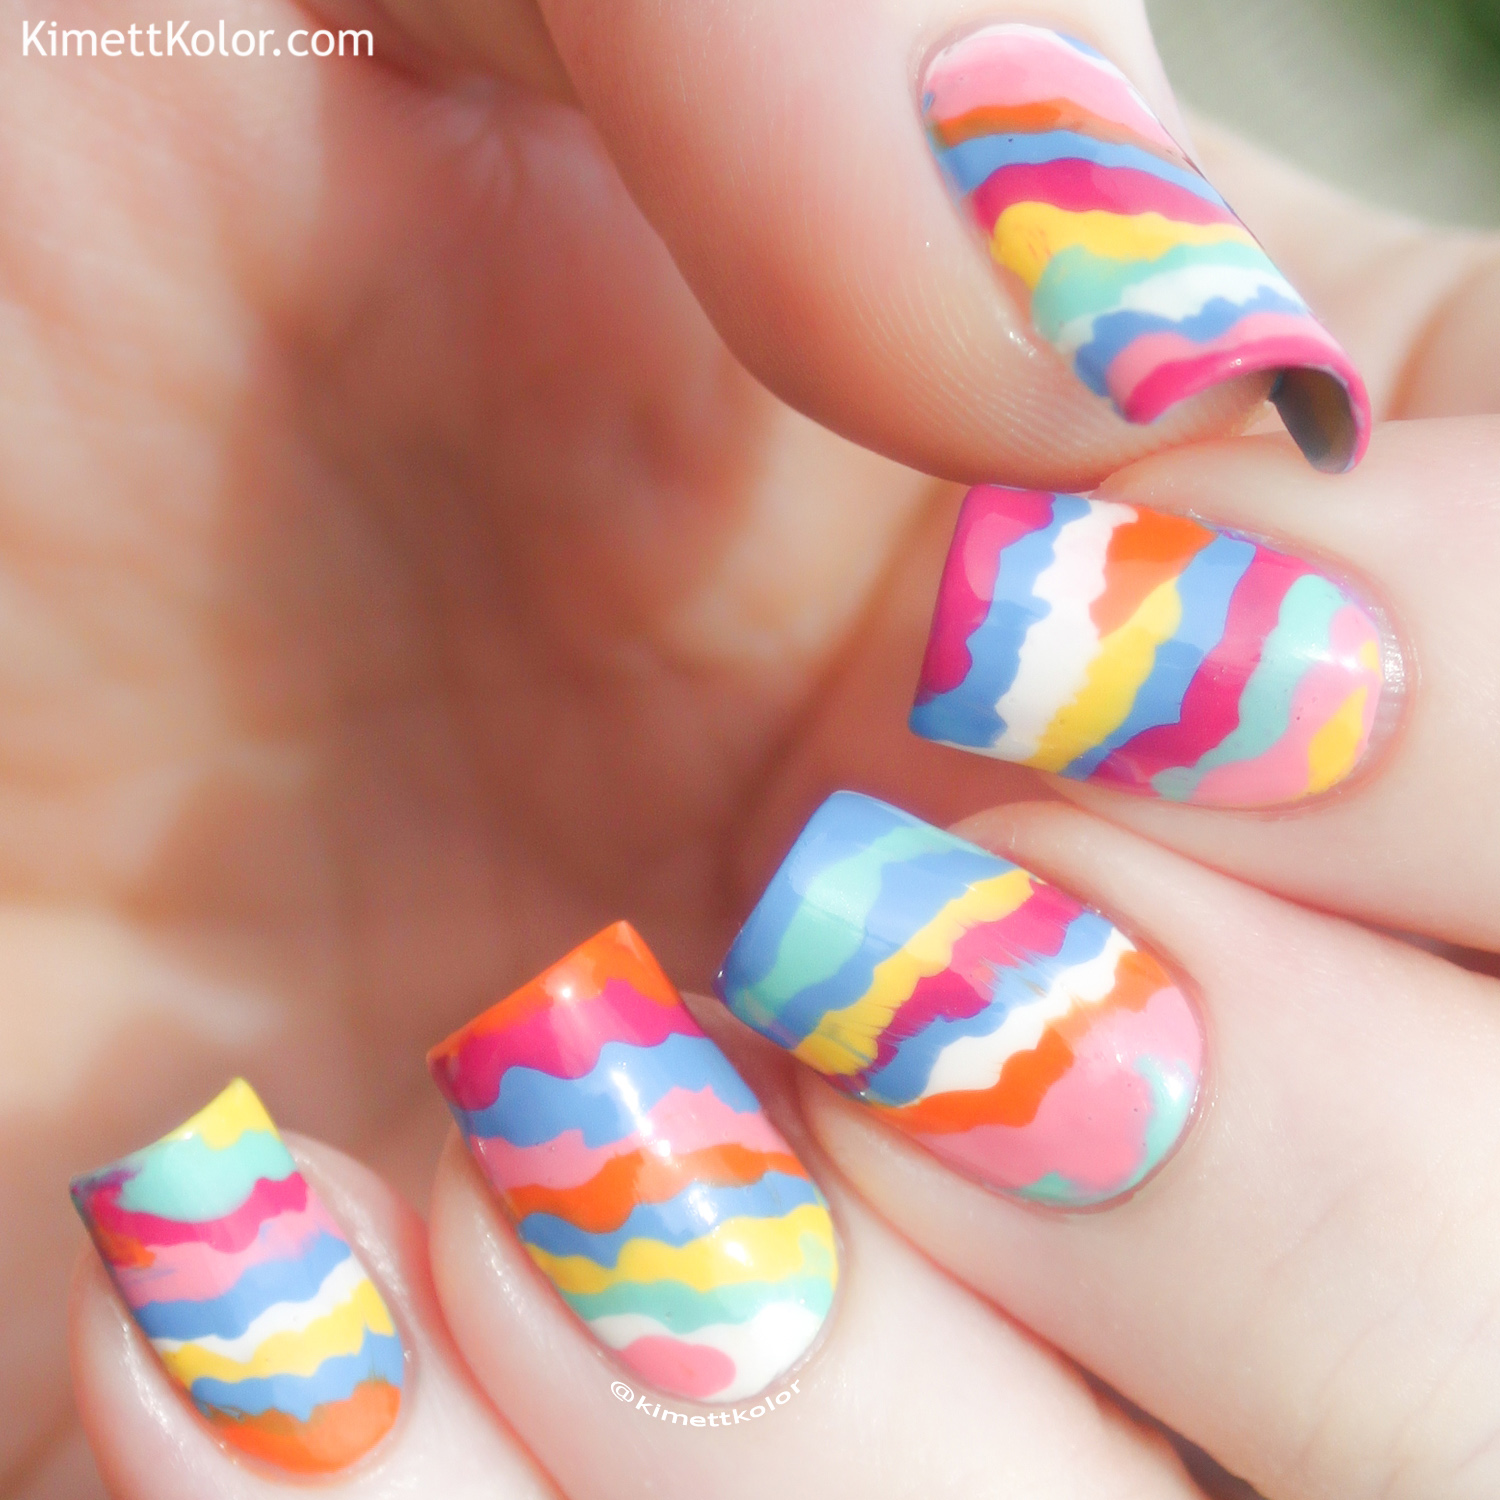 KimettKolor Summer Dribble Nail Art